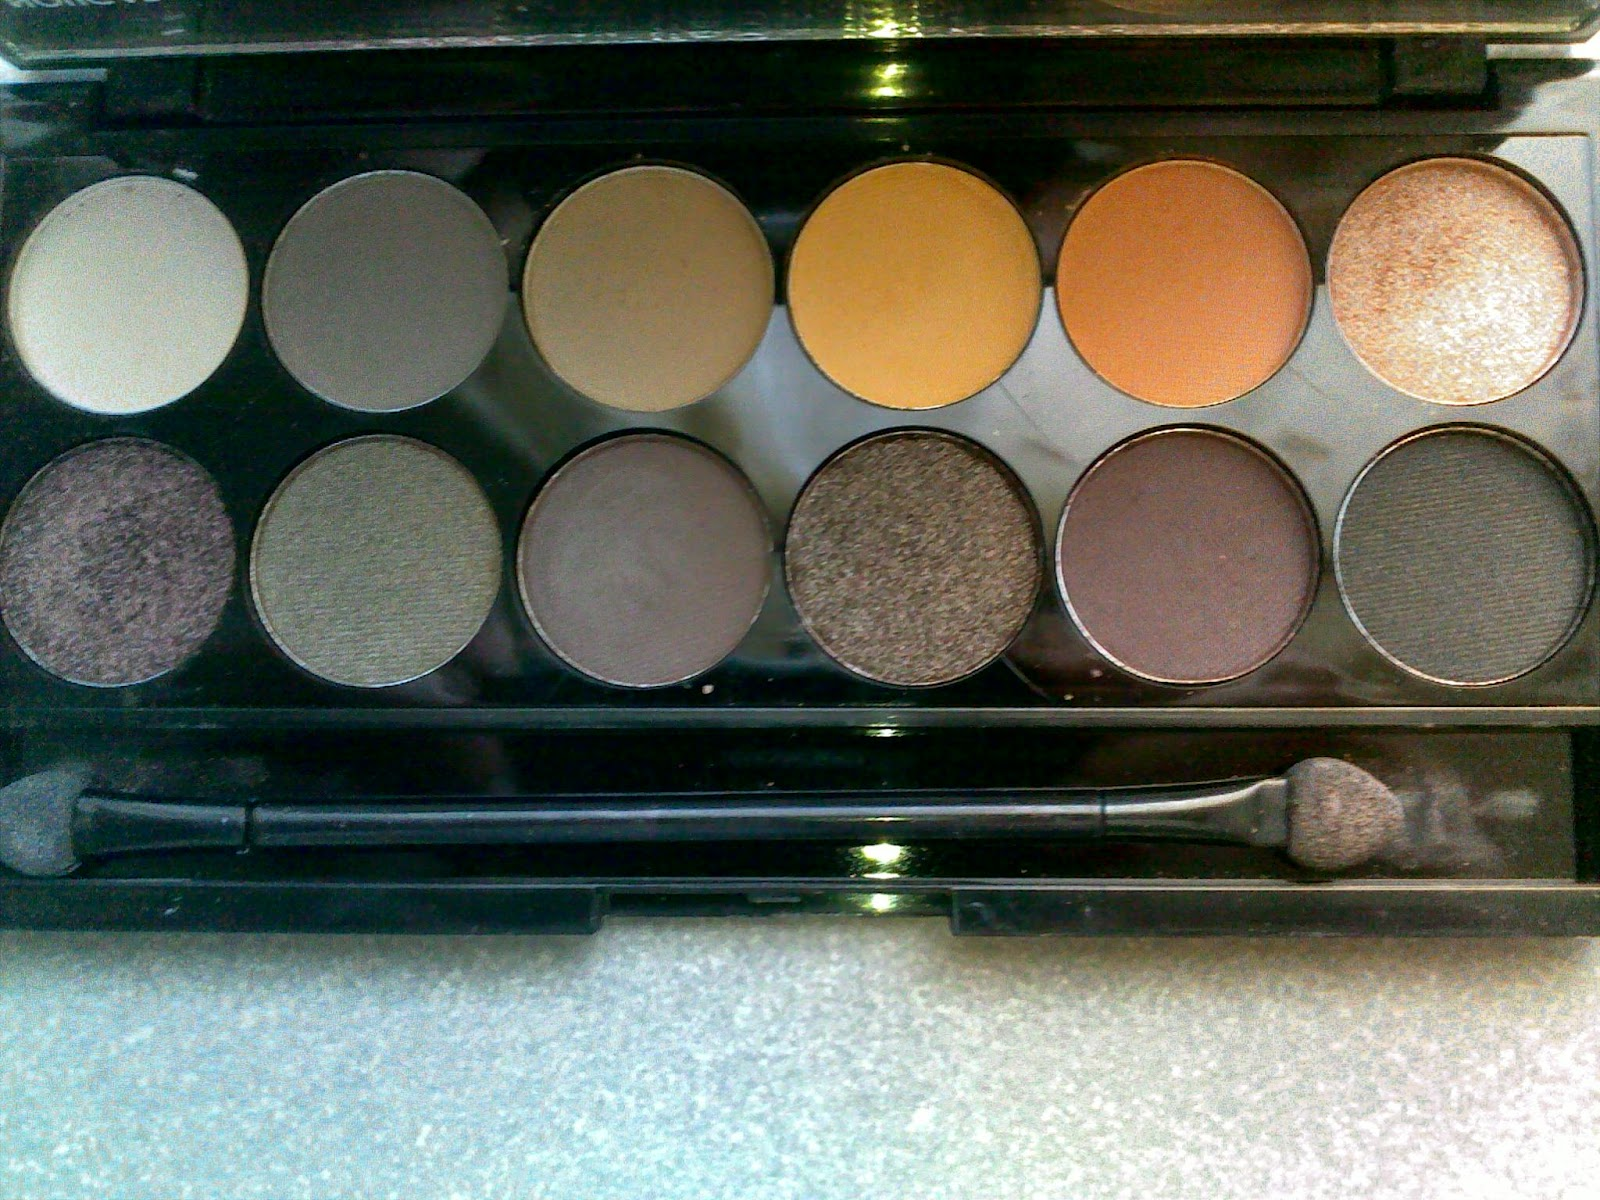 Sleek i-Divine palette in Au Naturel